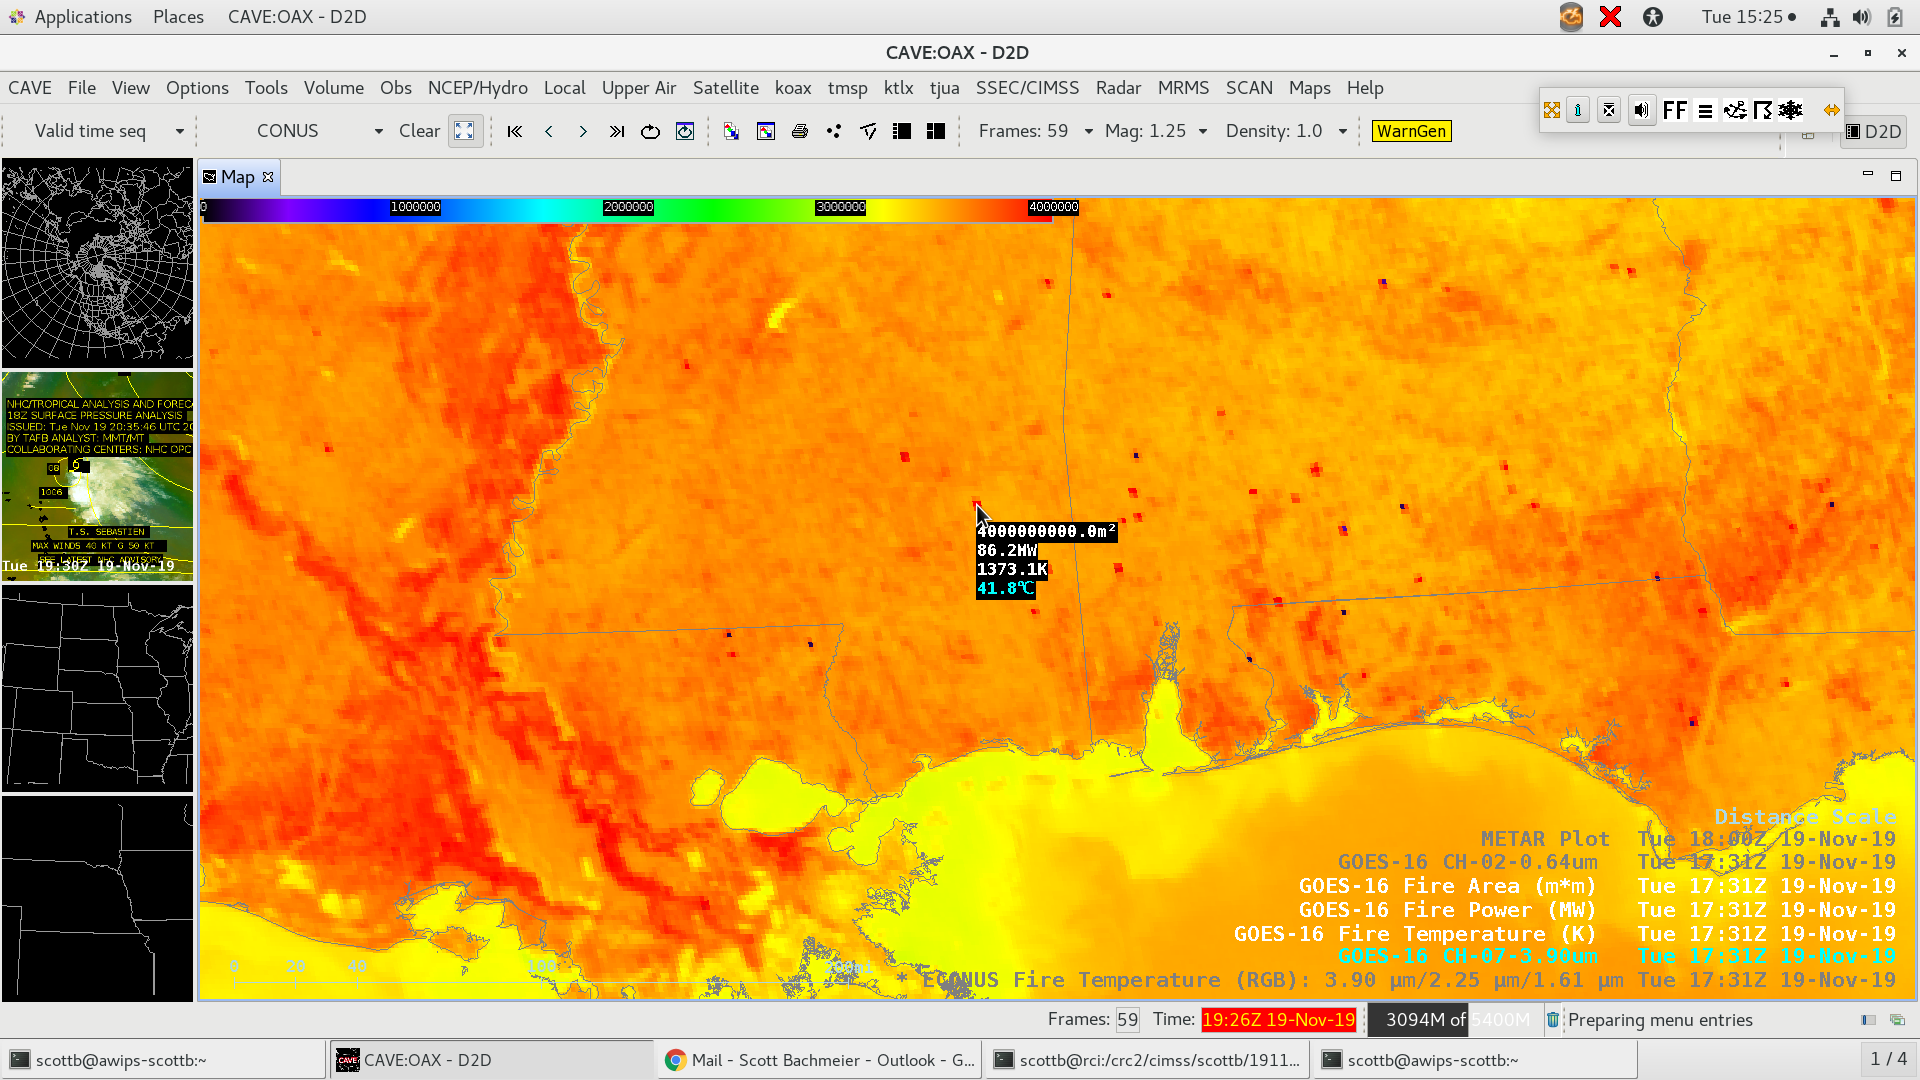 GOES-16 Shortwave Infrared (3.9 µm), Fire Temperature, Fire Power and Fire Area values at 1731 UTC [click to enlarge]